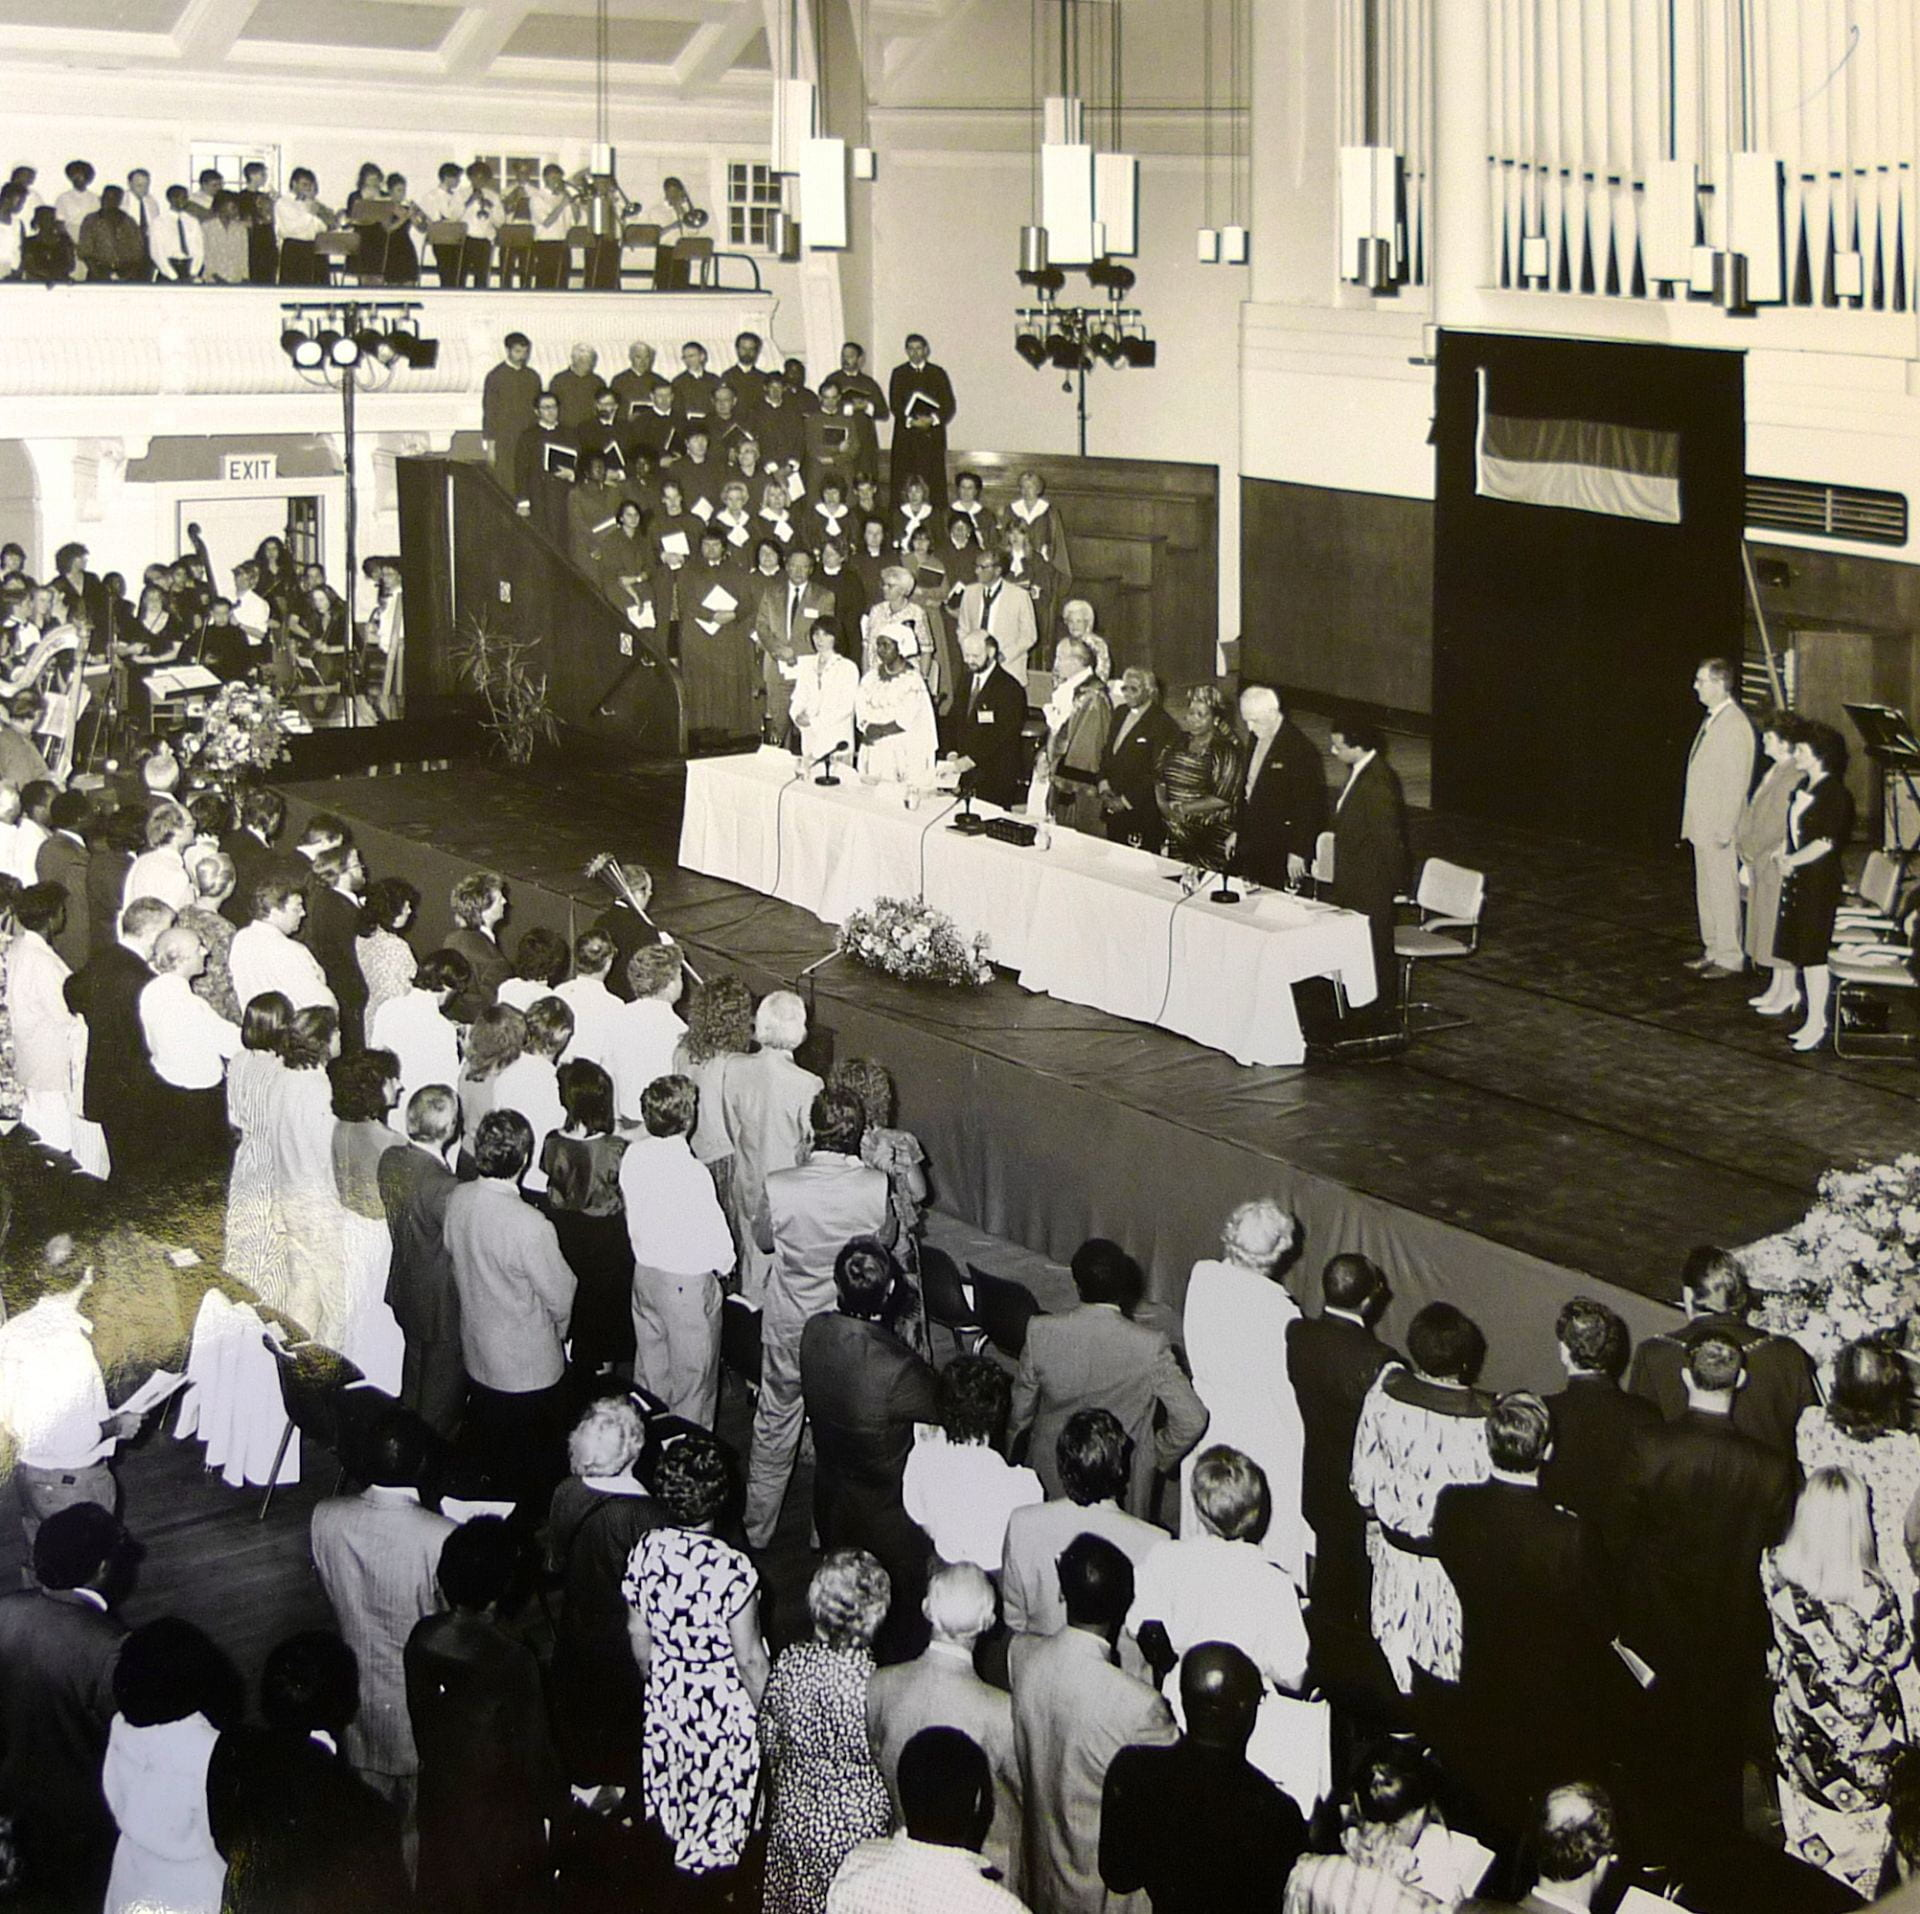 Black and white photograph of the Great Hall of Goldsmiths on May 4th 1990 taken from balcony looking down at stage in front of the organ where his most reverend Desmond Tutu is receiving the honorary freedom of Lewisham. Lewisham Council dignatories, local MP and Goldsmiths' College staff and students present.